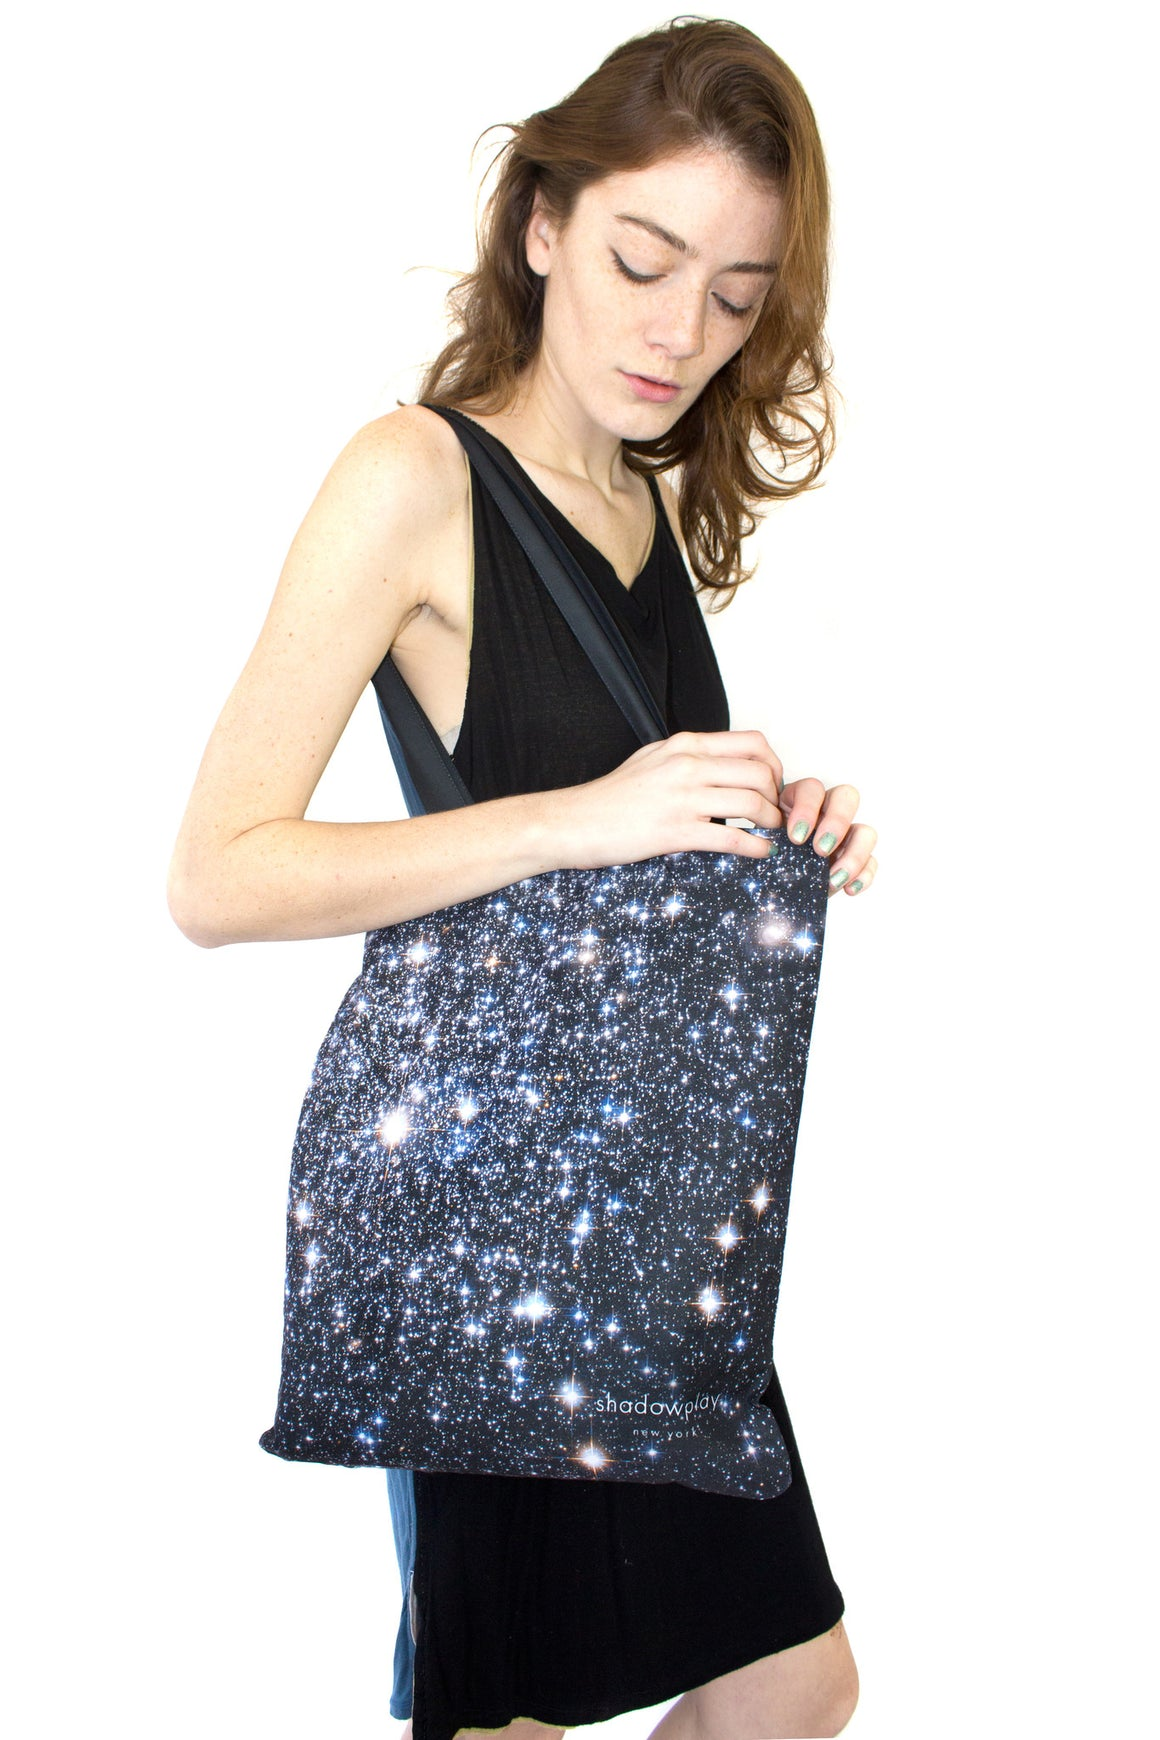 Star Cluster Tote, Shadowplay New York, Galaxy Print Clothing